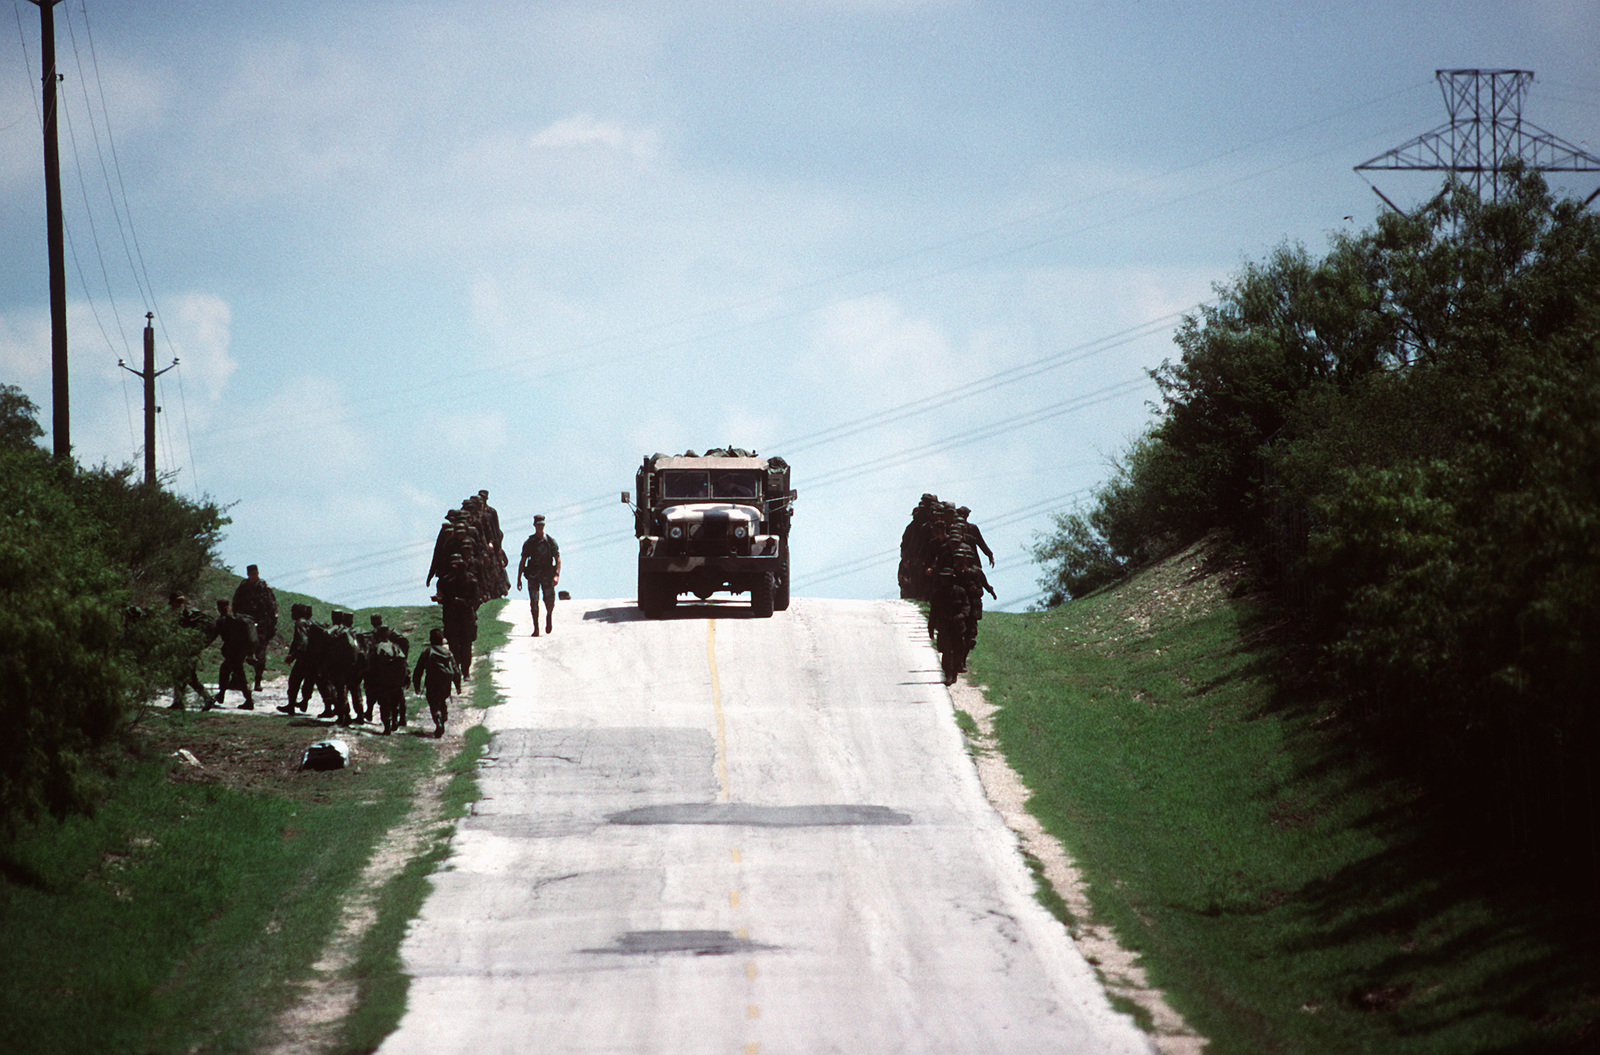 """For basic trainees at Lackland Air Force Base, Texas, a field training exercise ends with a 5.8-mile march out of """"The Scorpion's Nest,"""" and back to civilization. The trainees are being tested as they march on what they learned when simulated attacks are stages against them"""